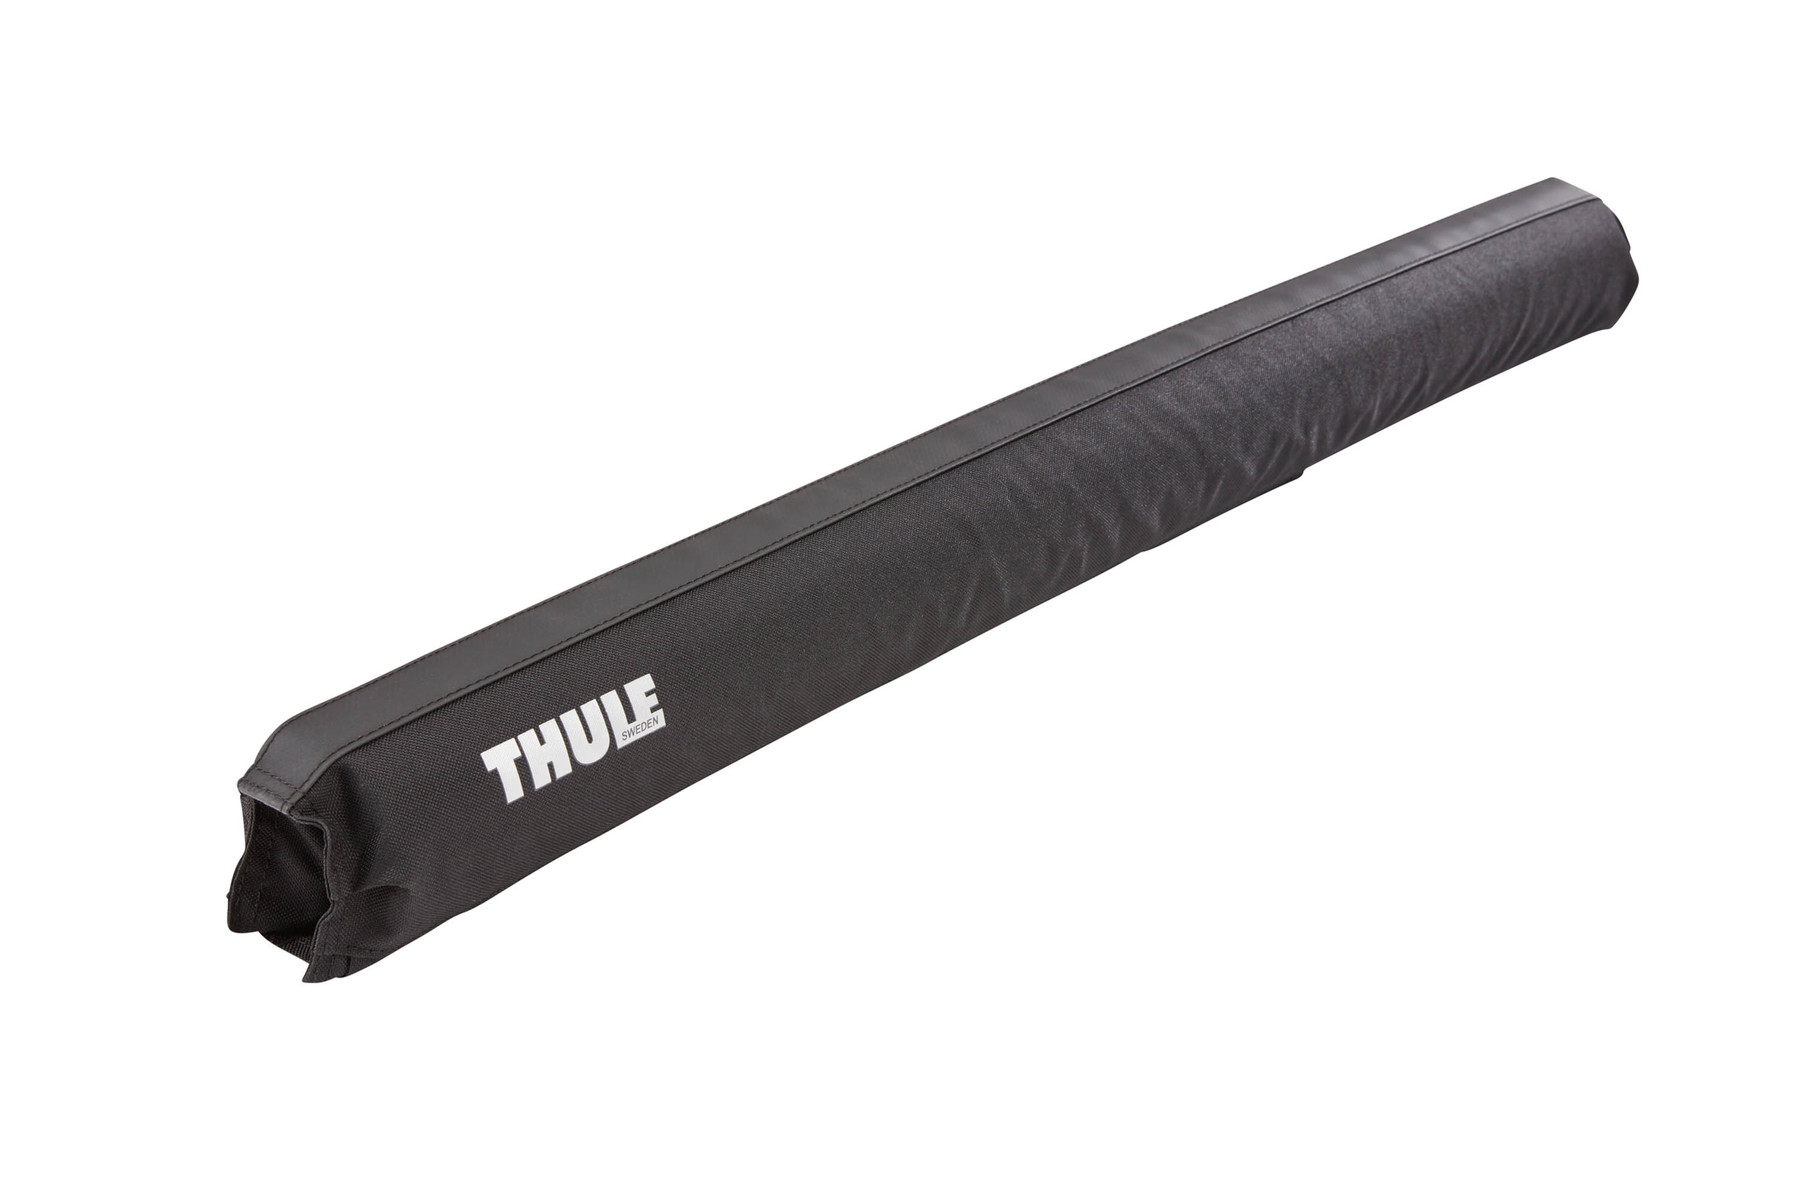 Thule SurfPad Narrow L 30 inches